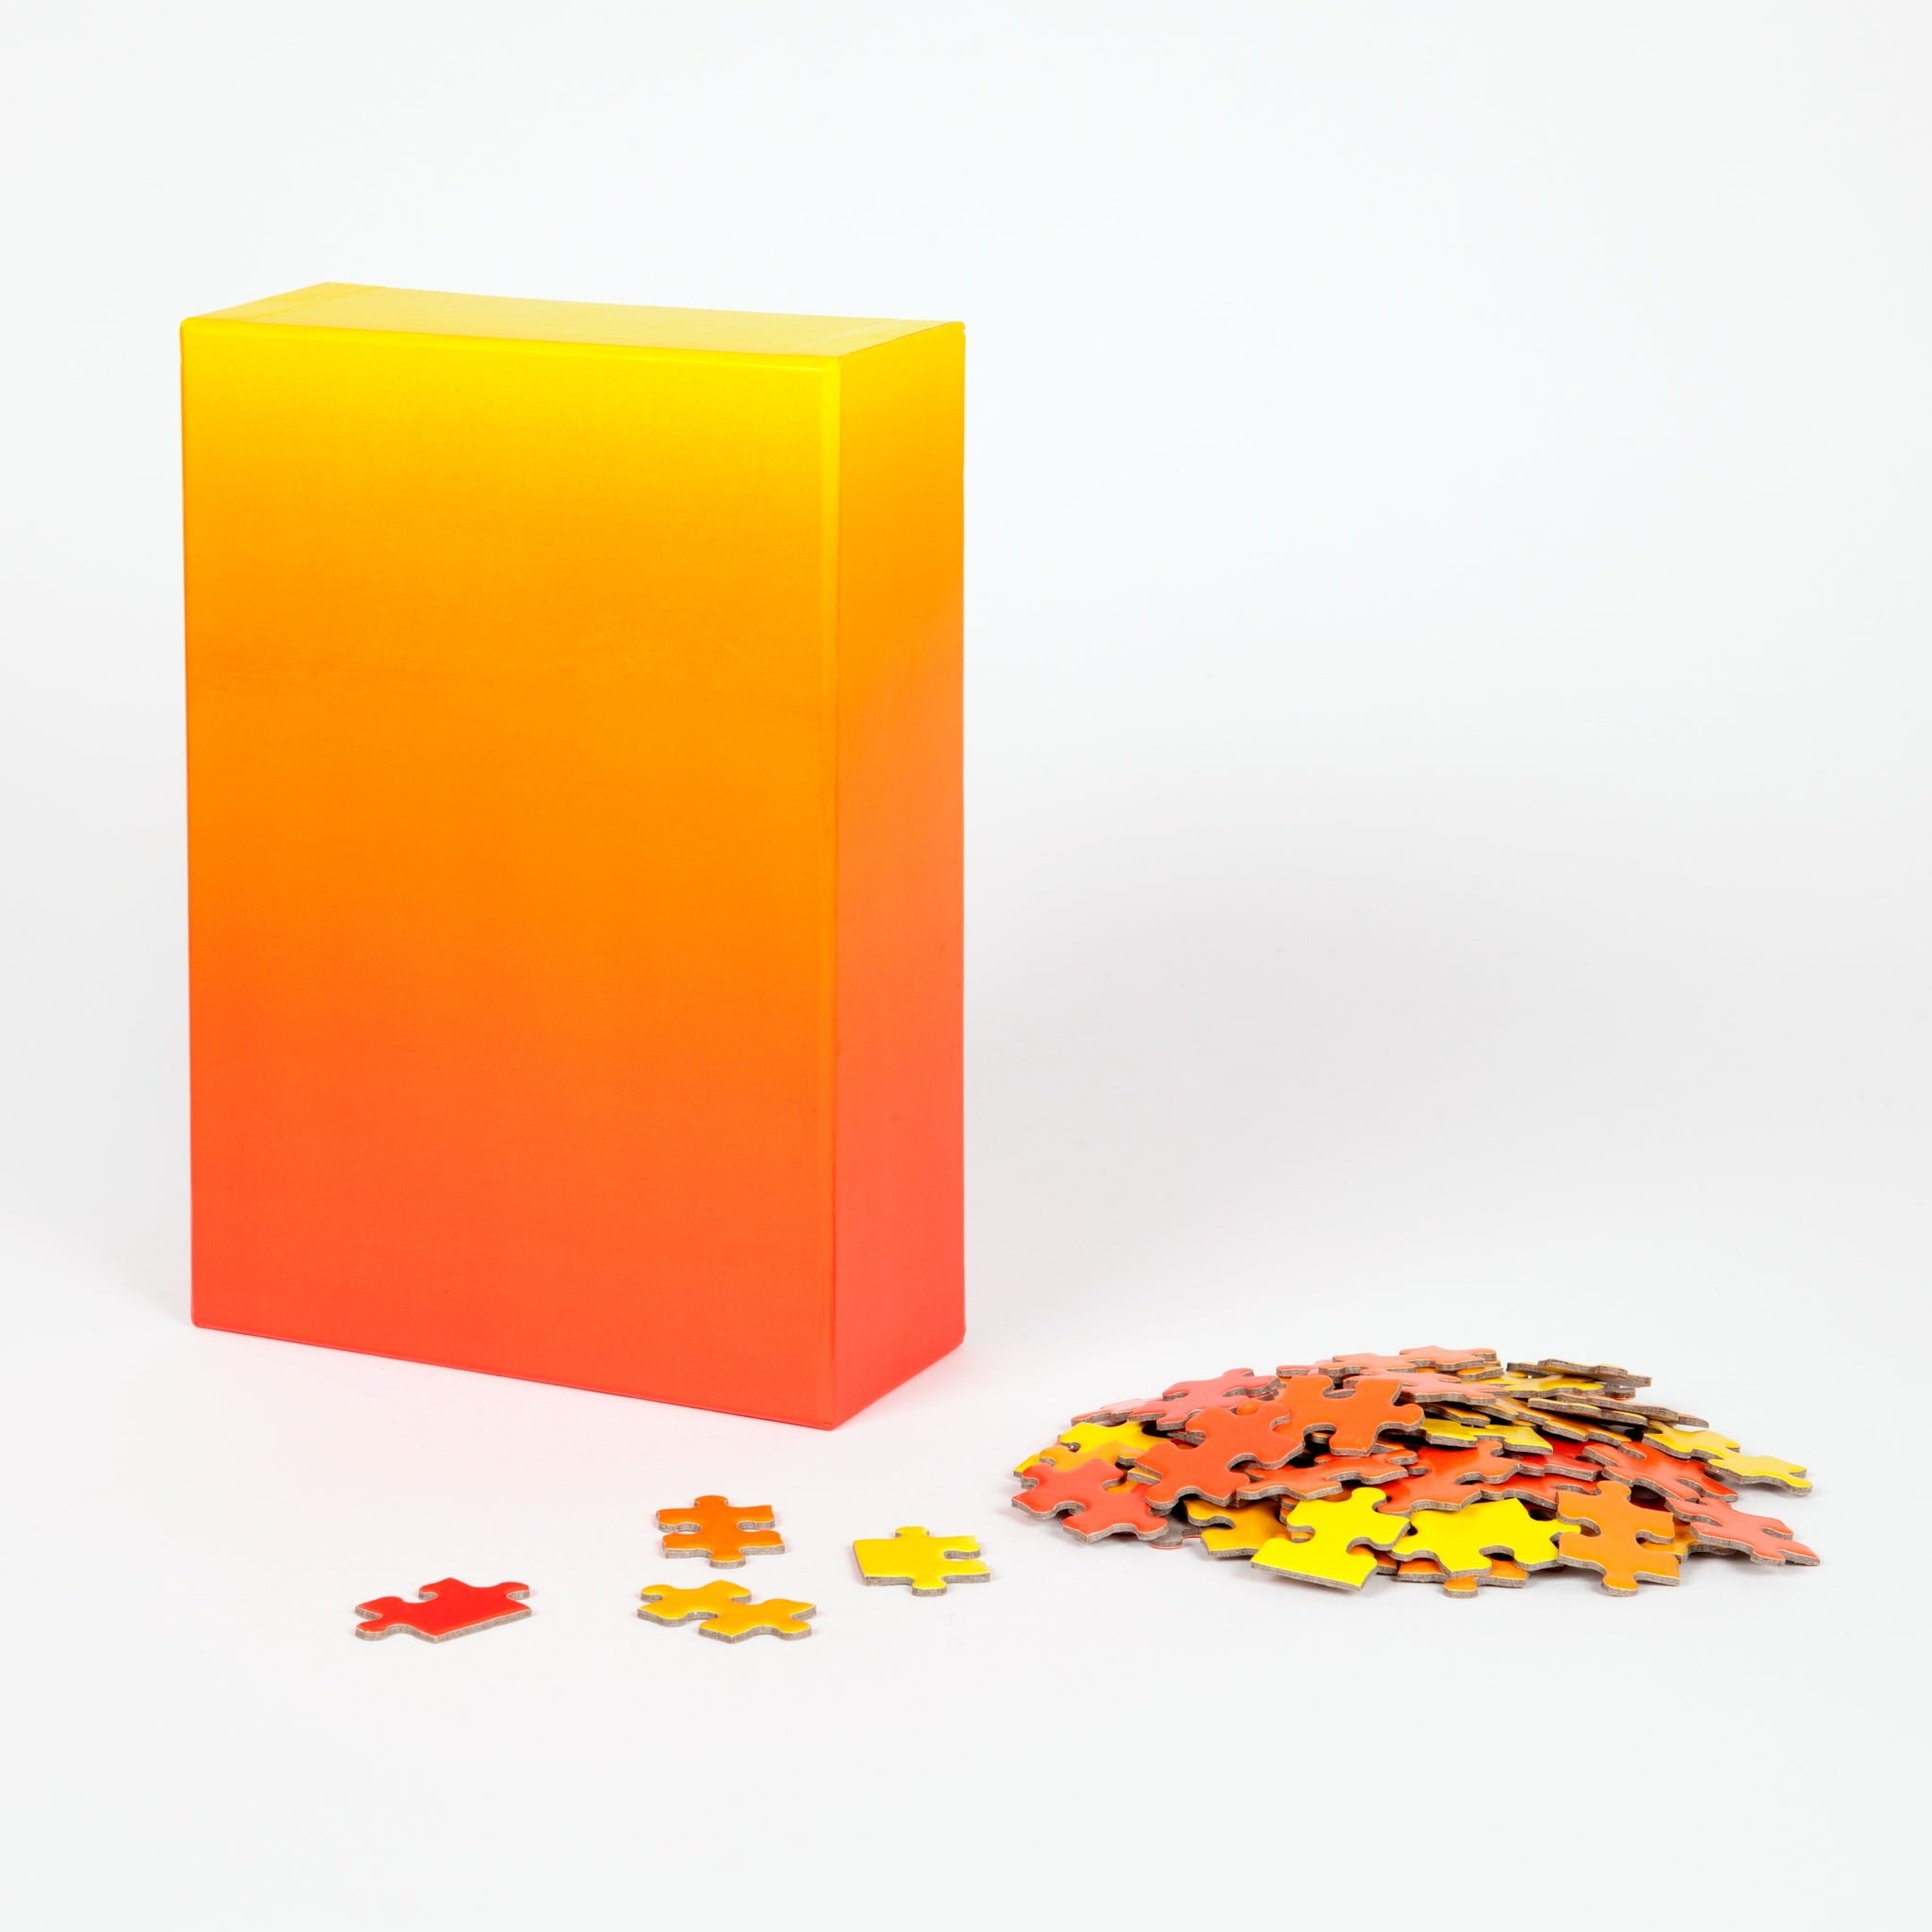 Red and Yellow Gradient Puzzle by Bryce Wilner for Areaware